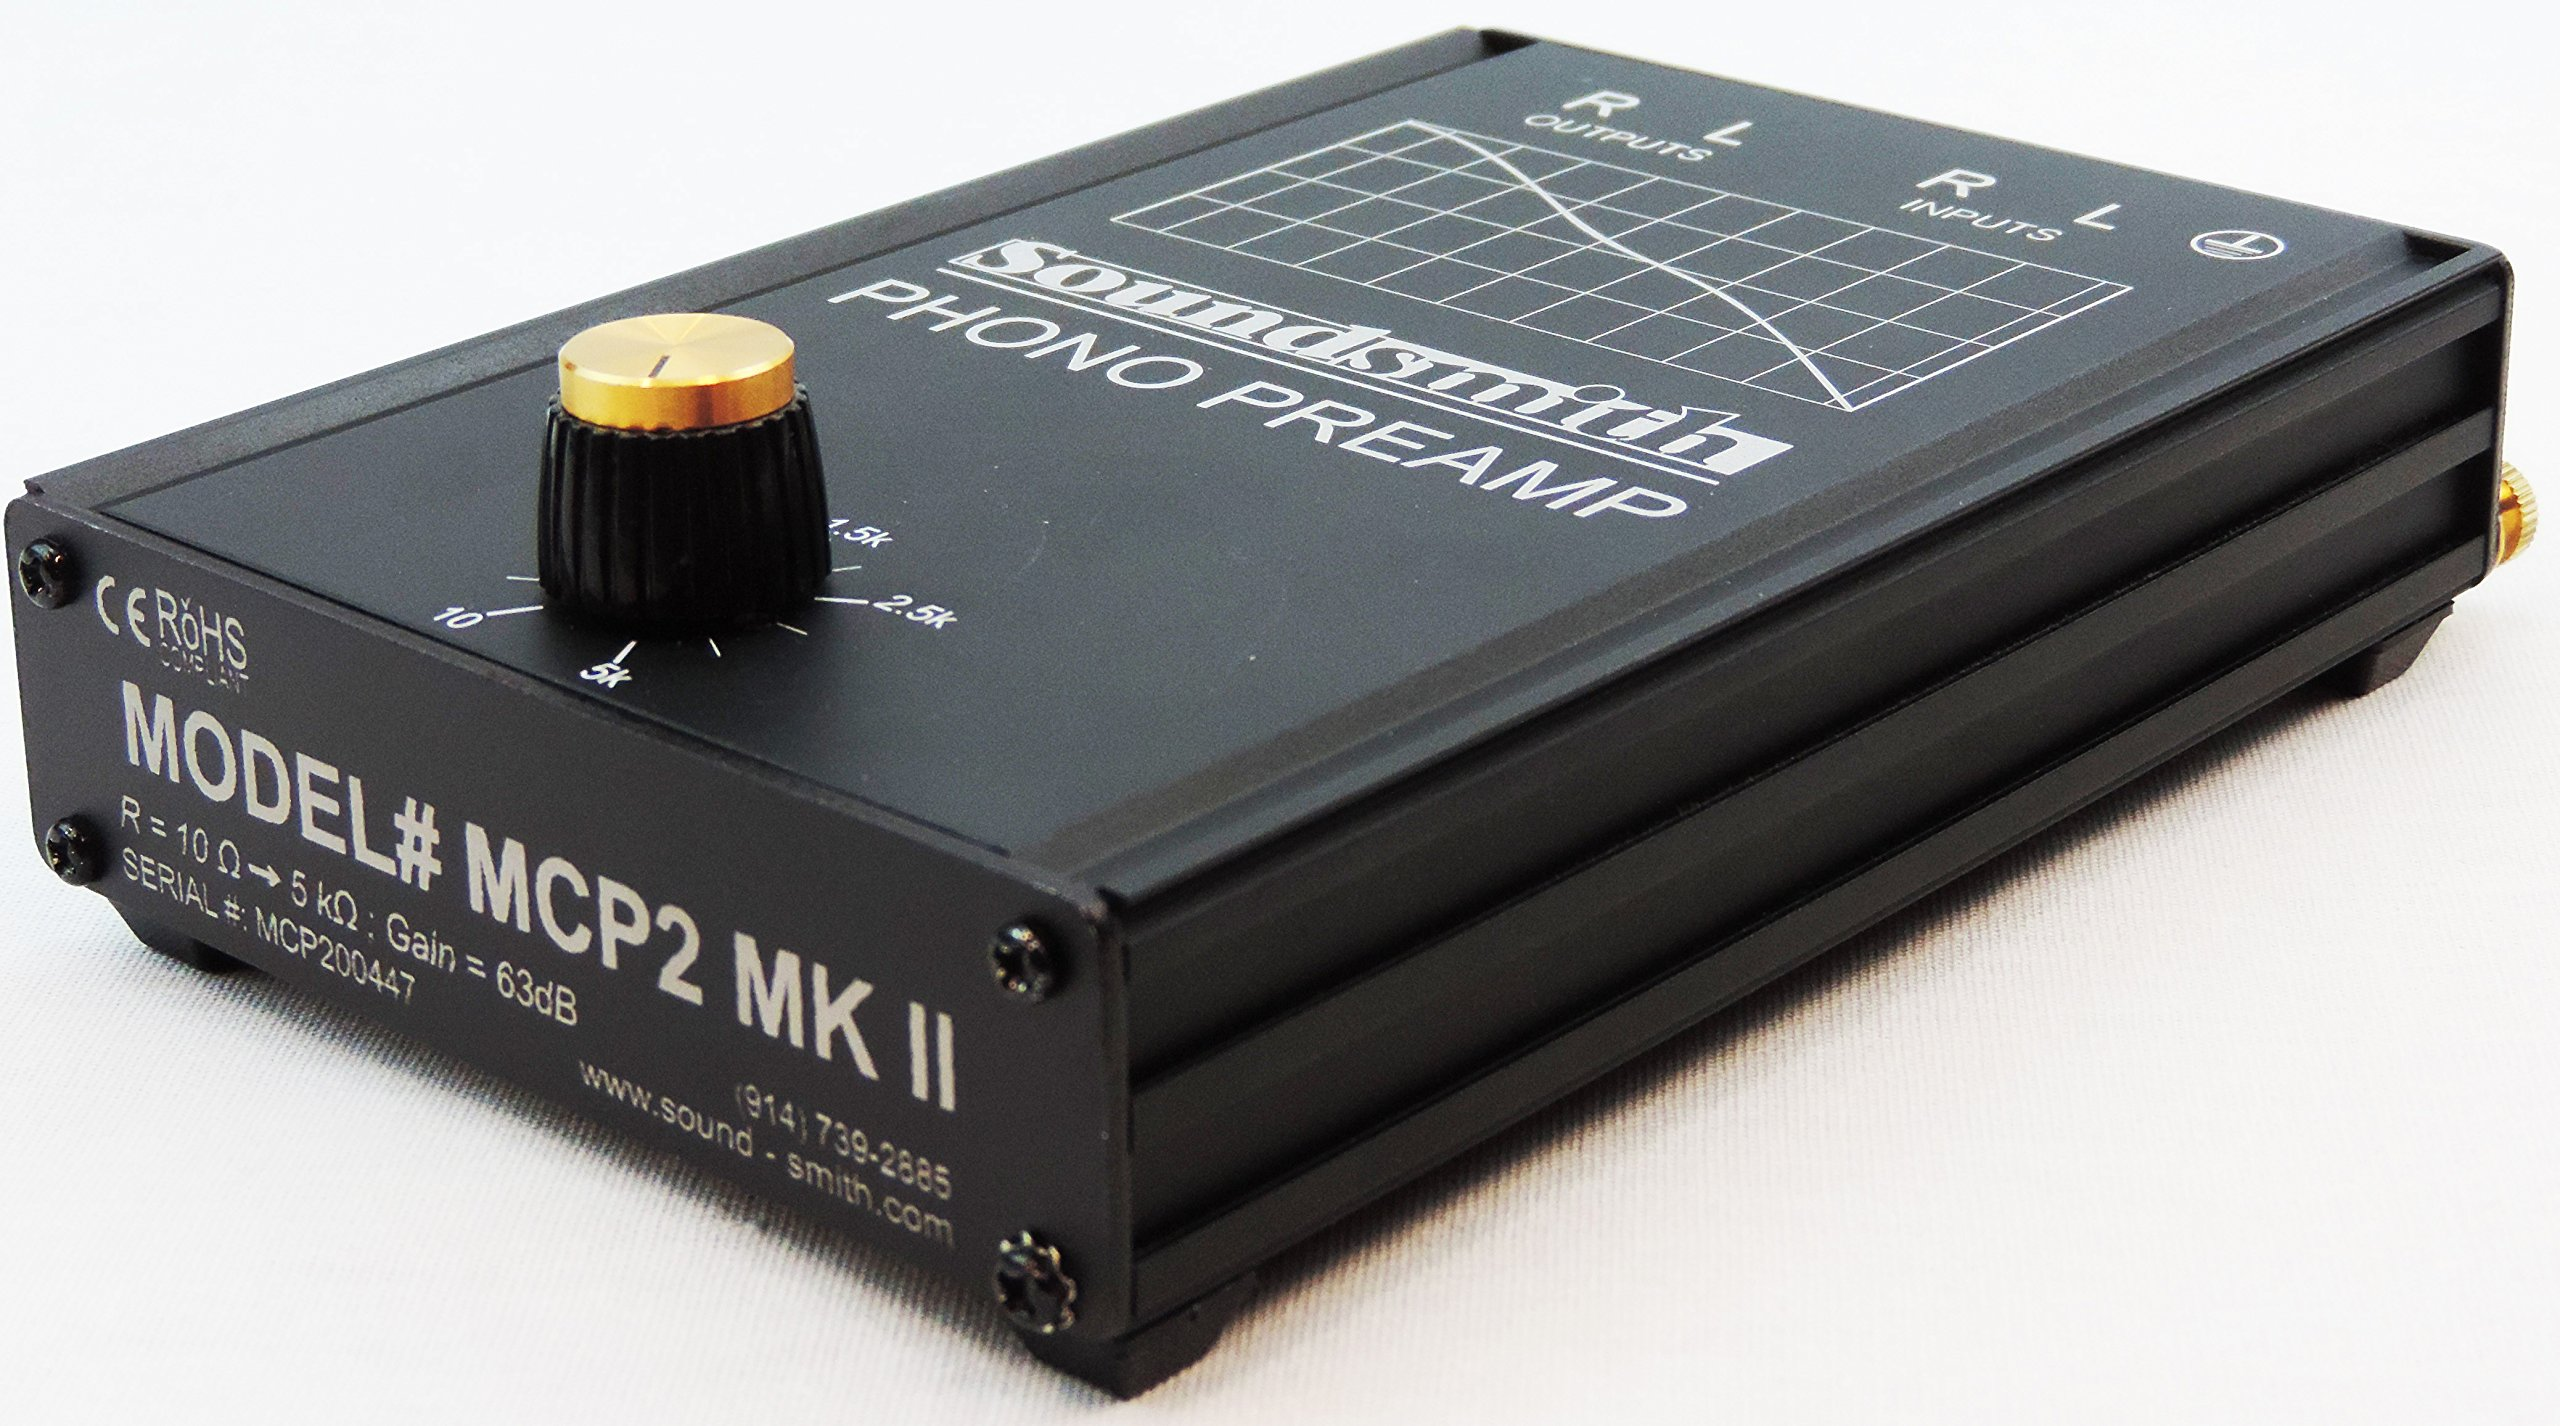 Soundsmith MCP2 MKII High-End Moving-Coil Phono Preamp with Variable Loading by SoundSmith